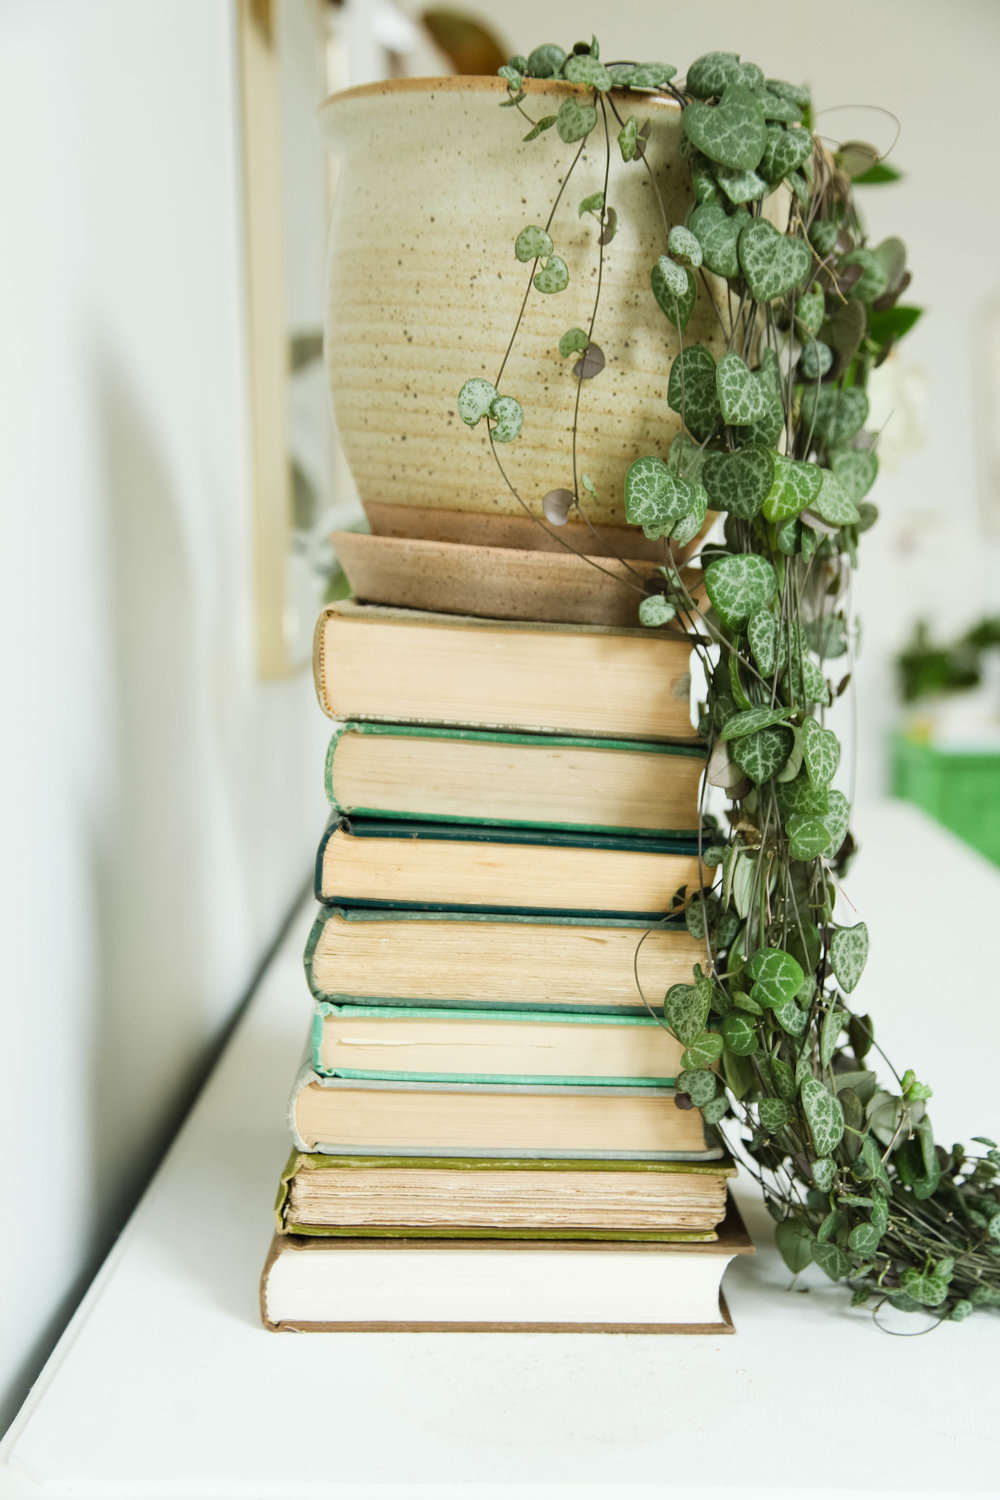 Style tip: Stack books for height.